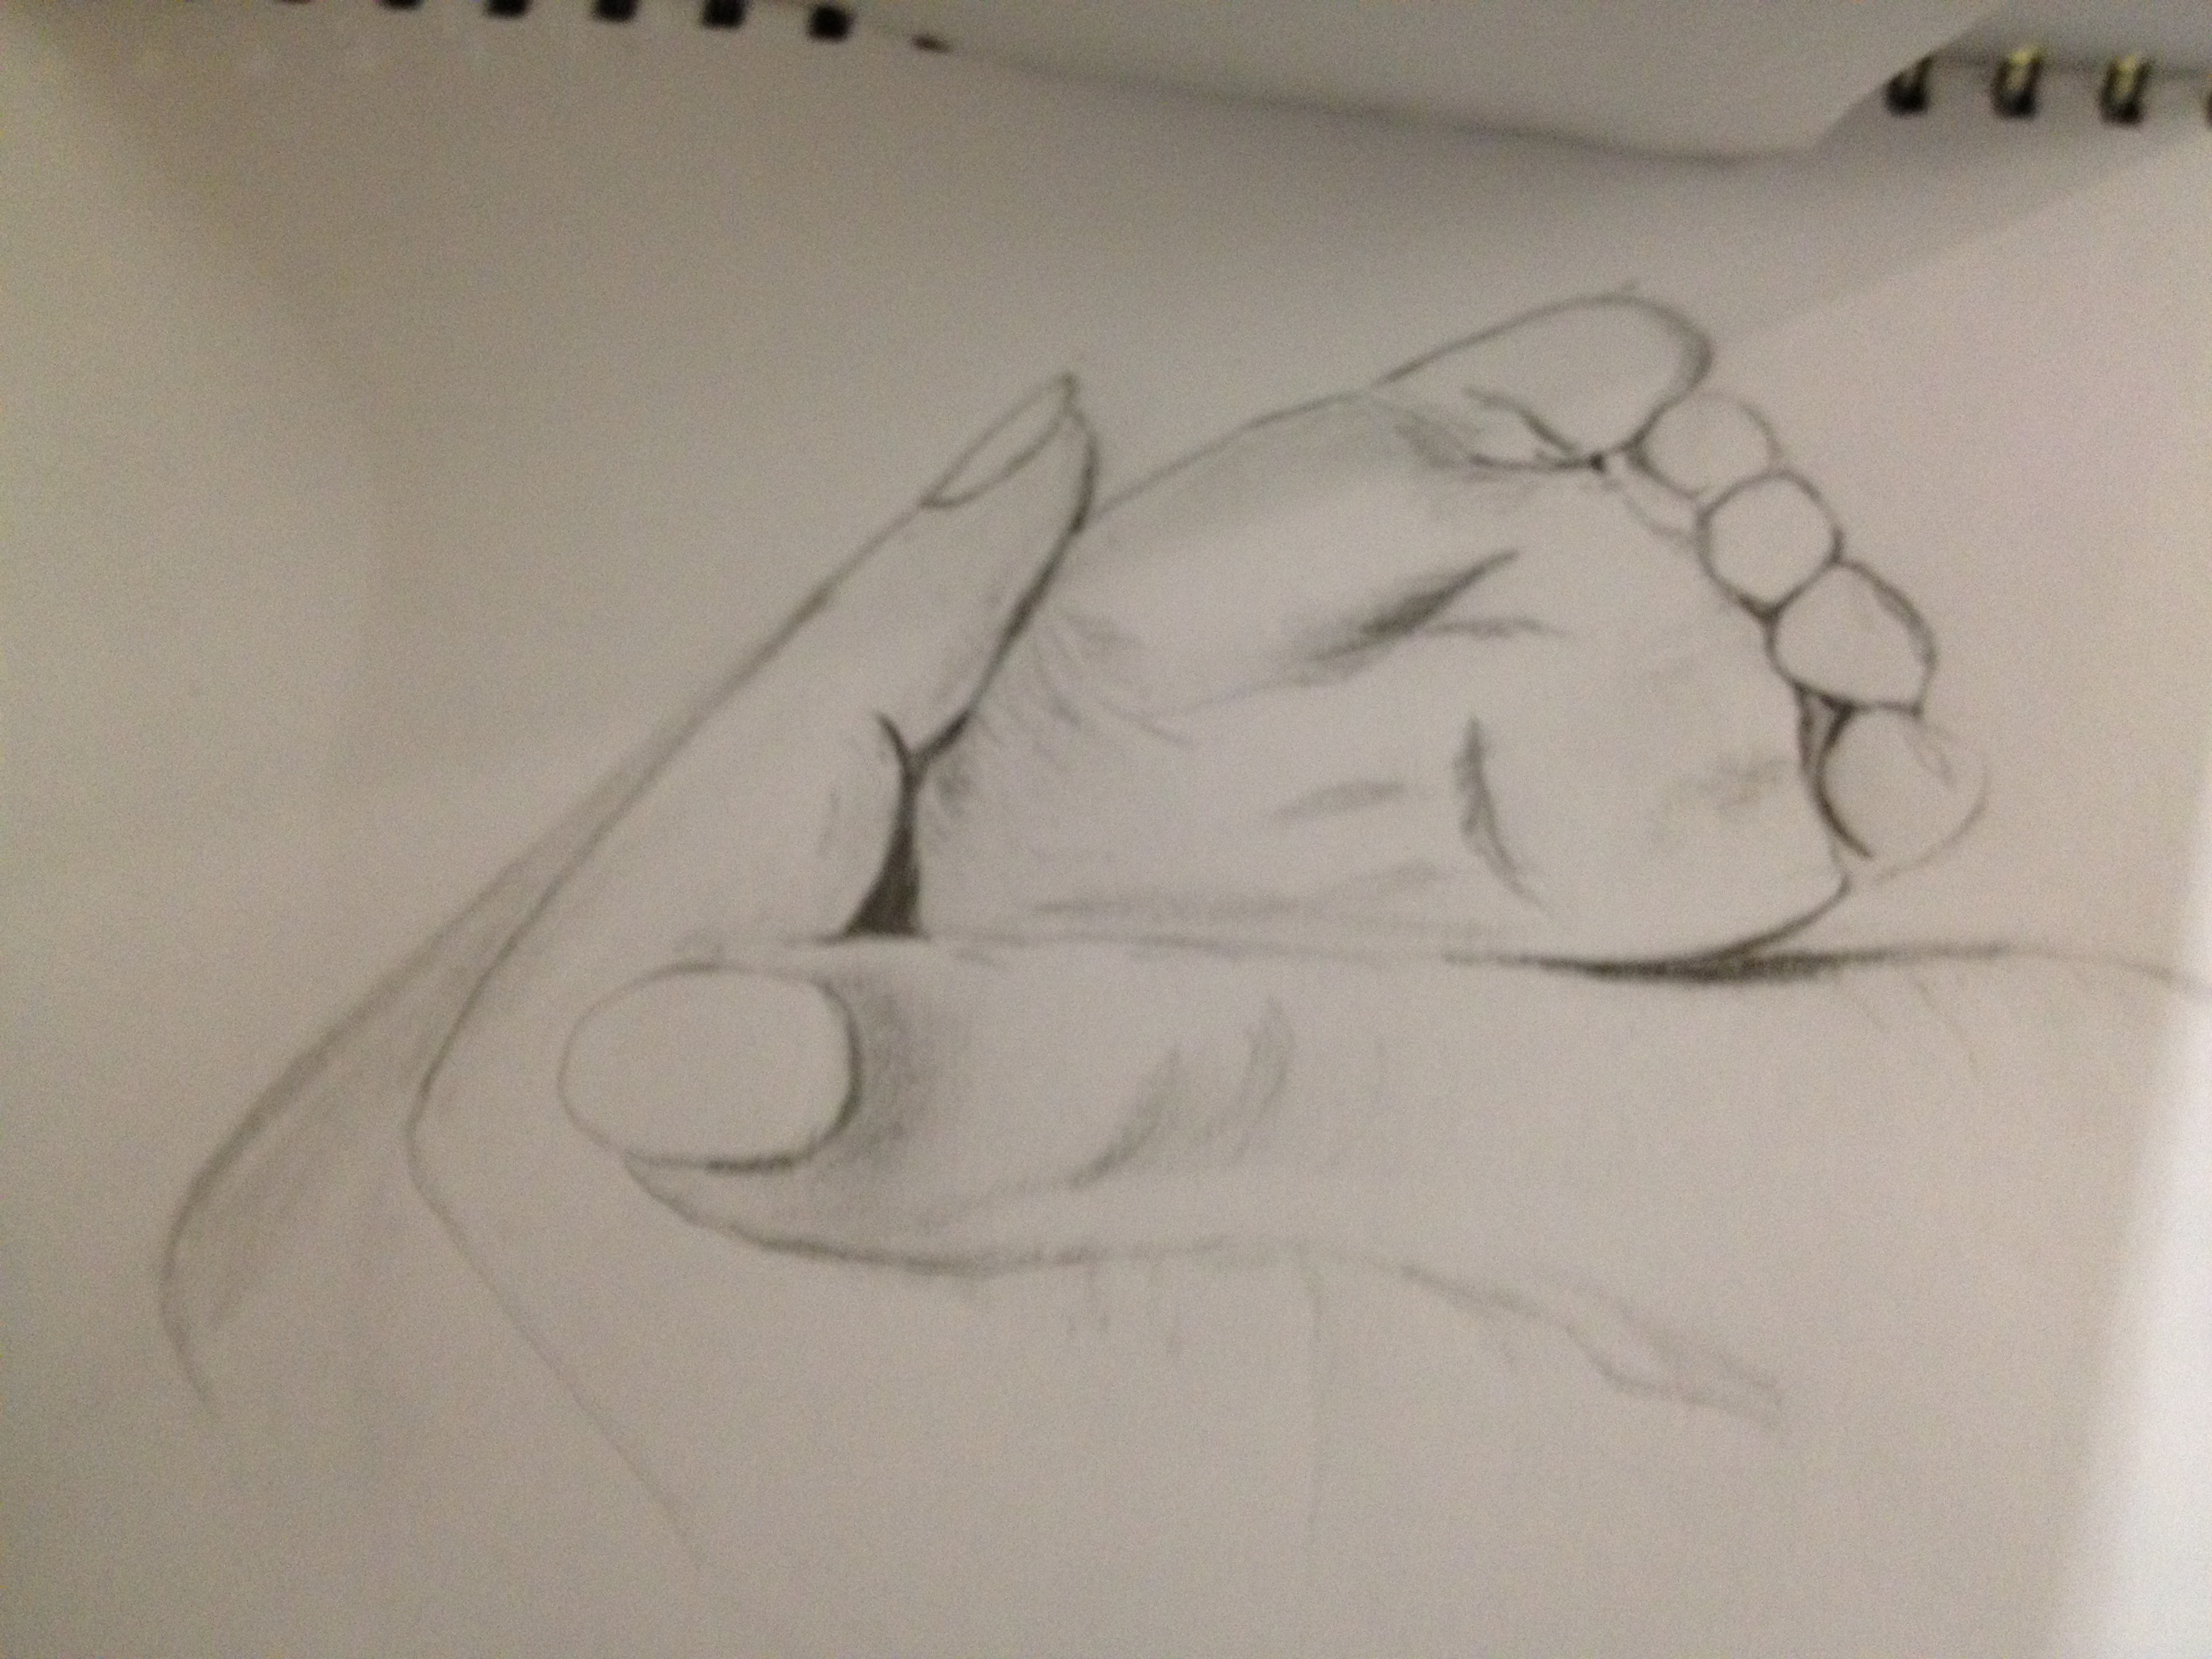 3264x2448 Baby Foot In Hand Pencil Drawings Baby Foot